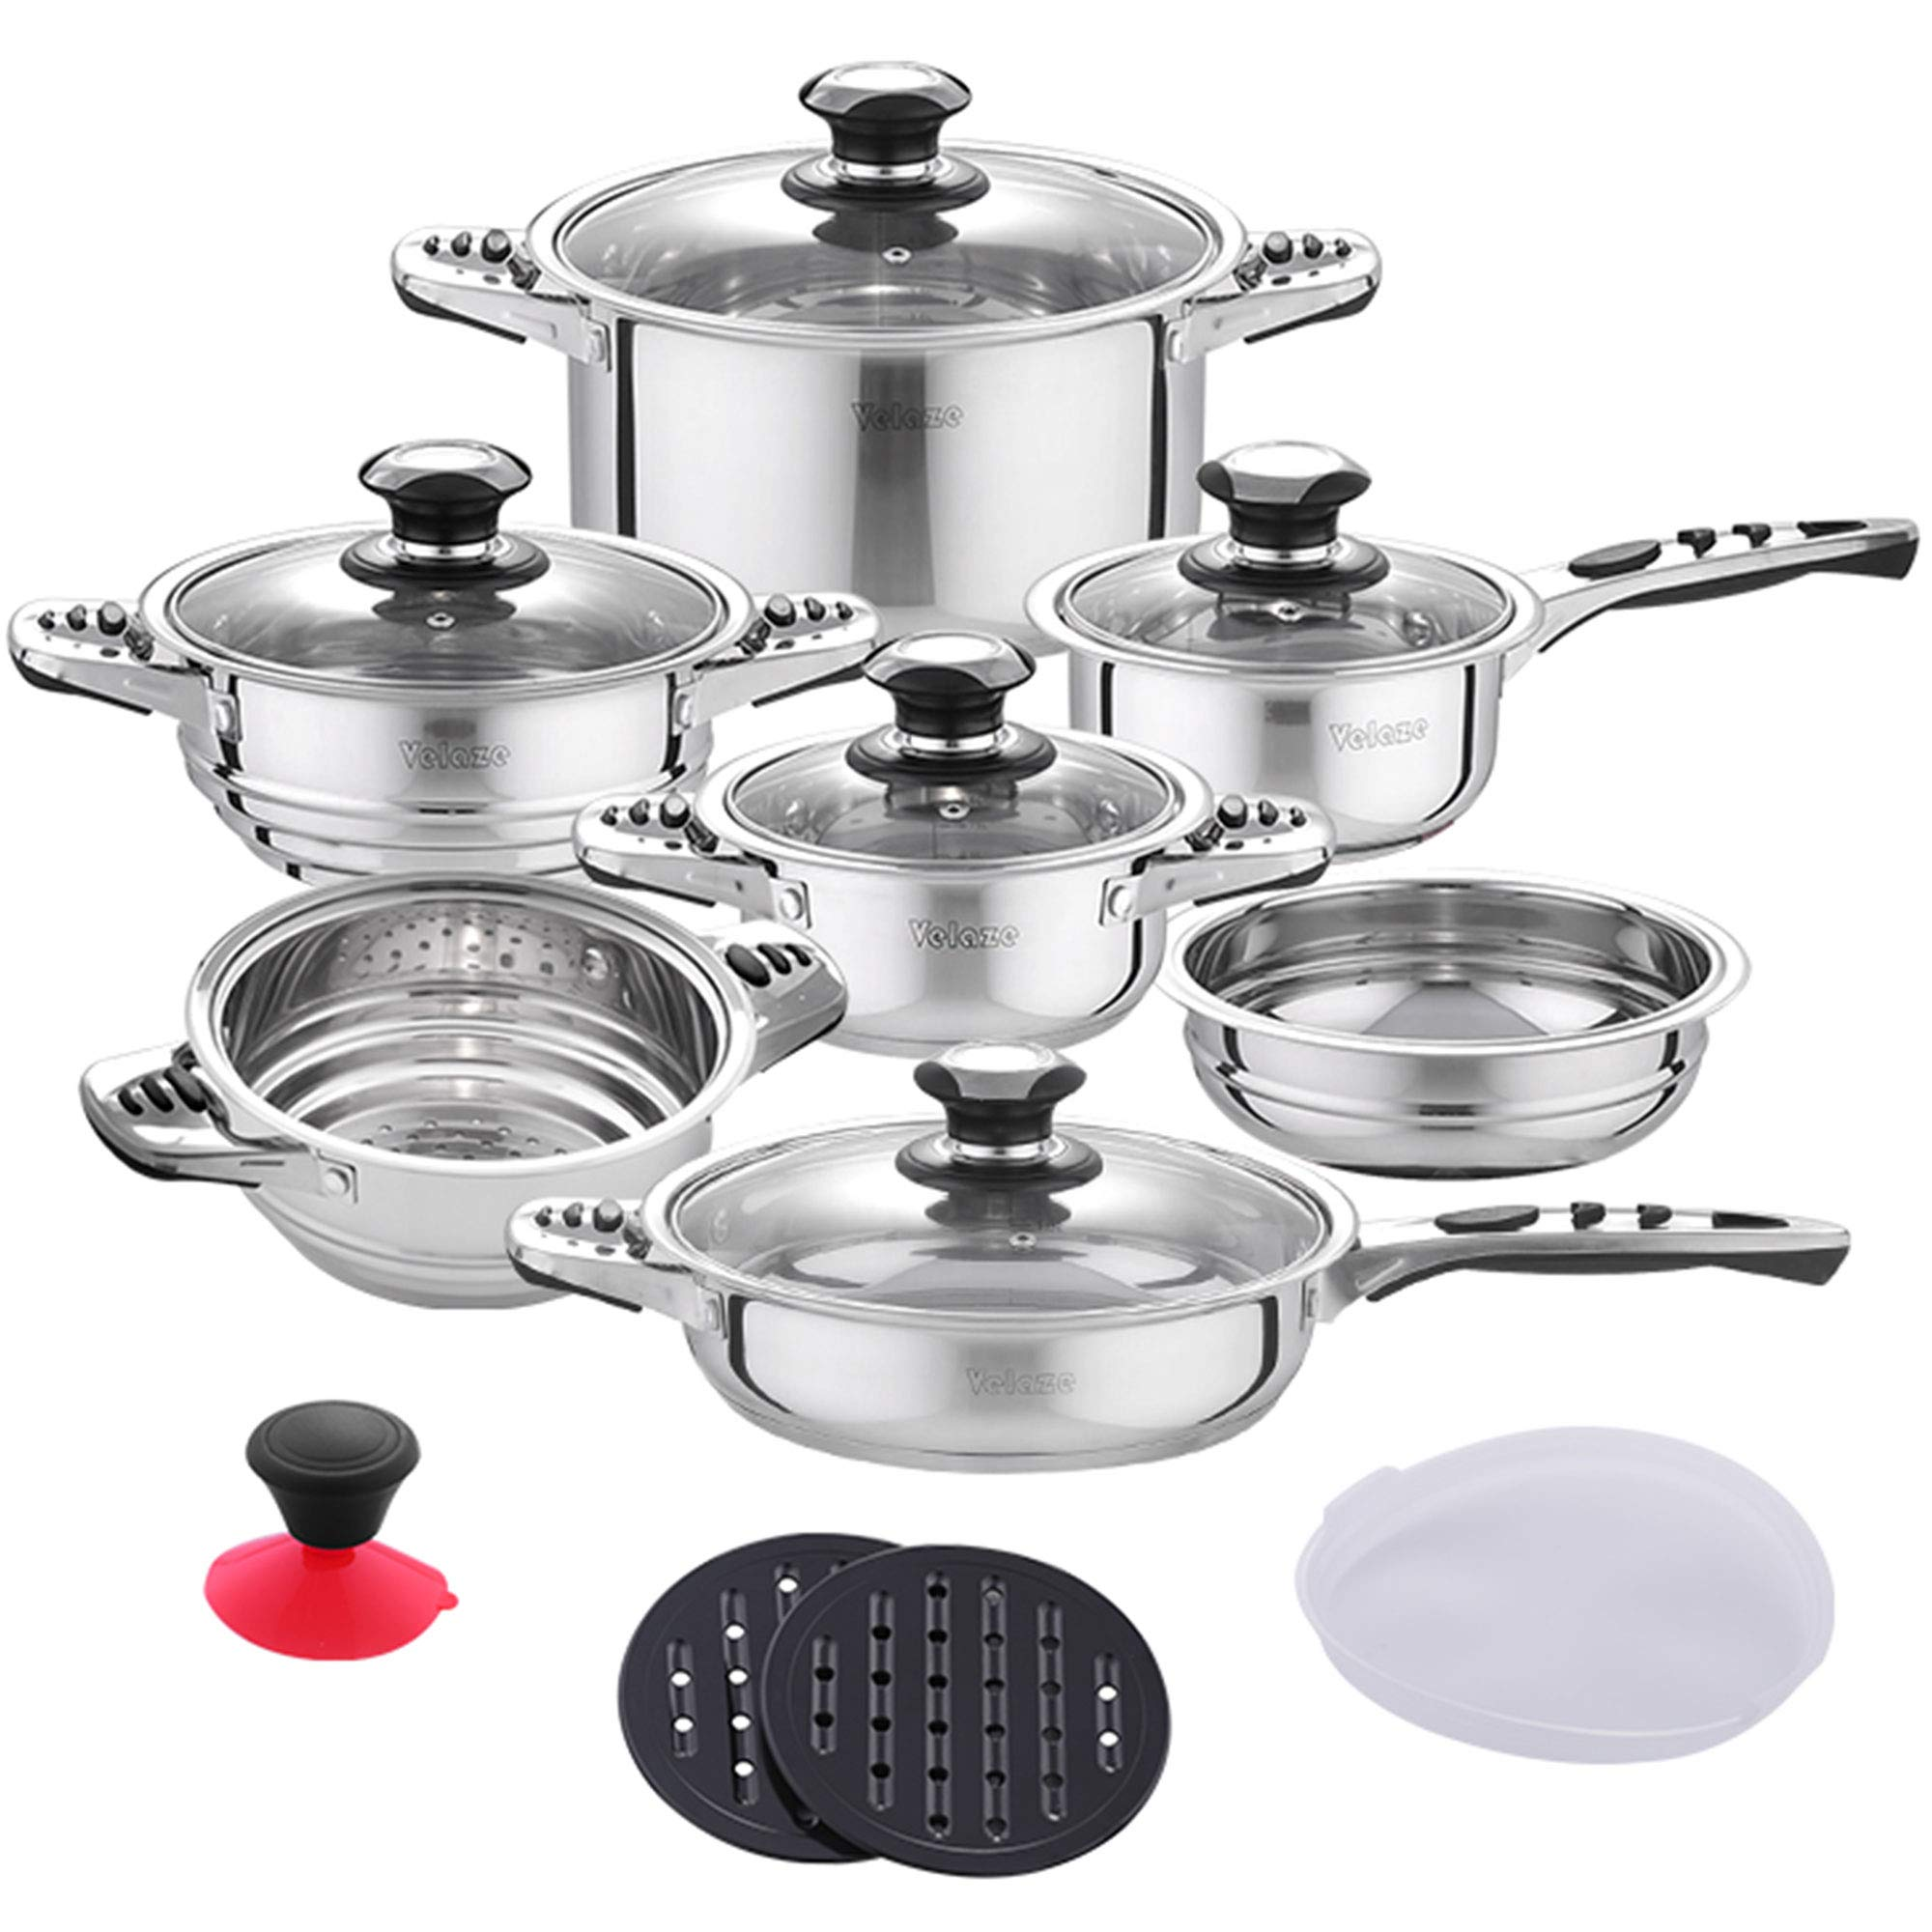 Velaze 16-Piece Cookware Set, Stainless Steel Pots and Pans Set with Glass Lids, Silver